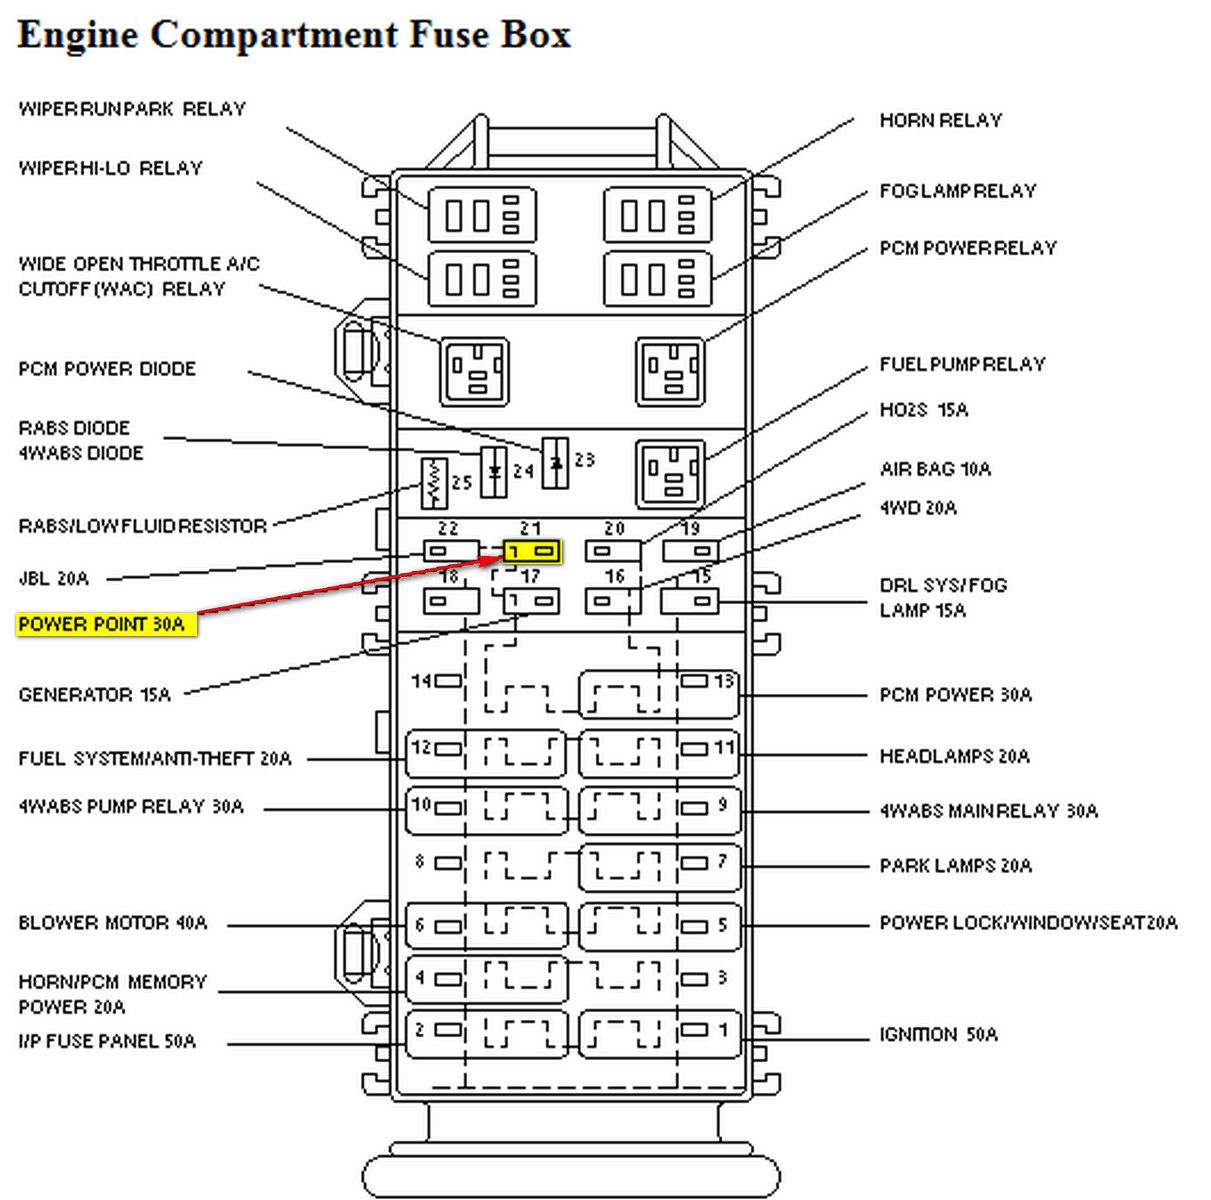 hight resolution of mack fuse box diagram wiring diagram add mack truck ch613 fuse panel diagram fuse panel diagram